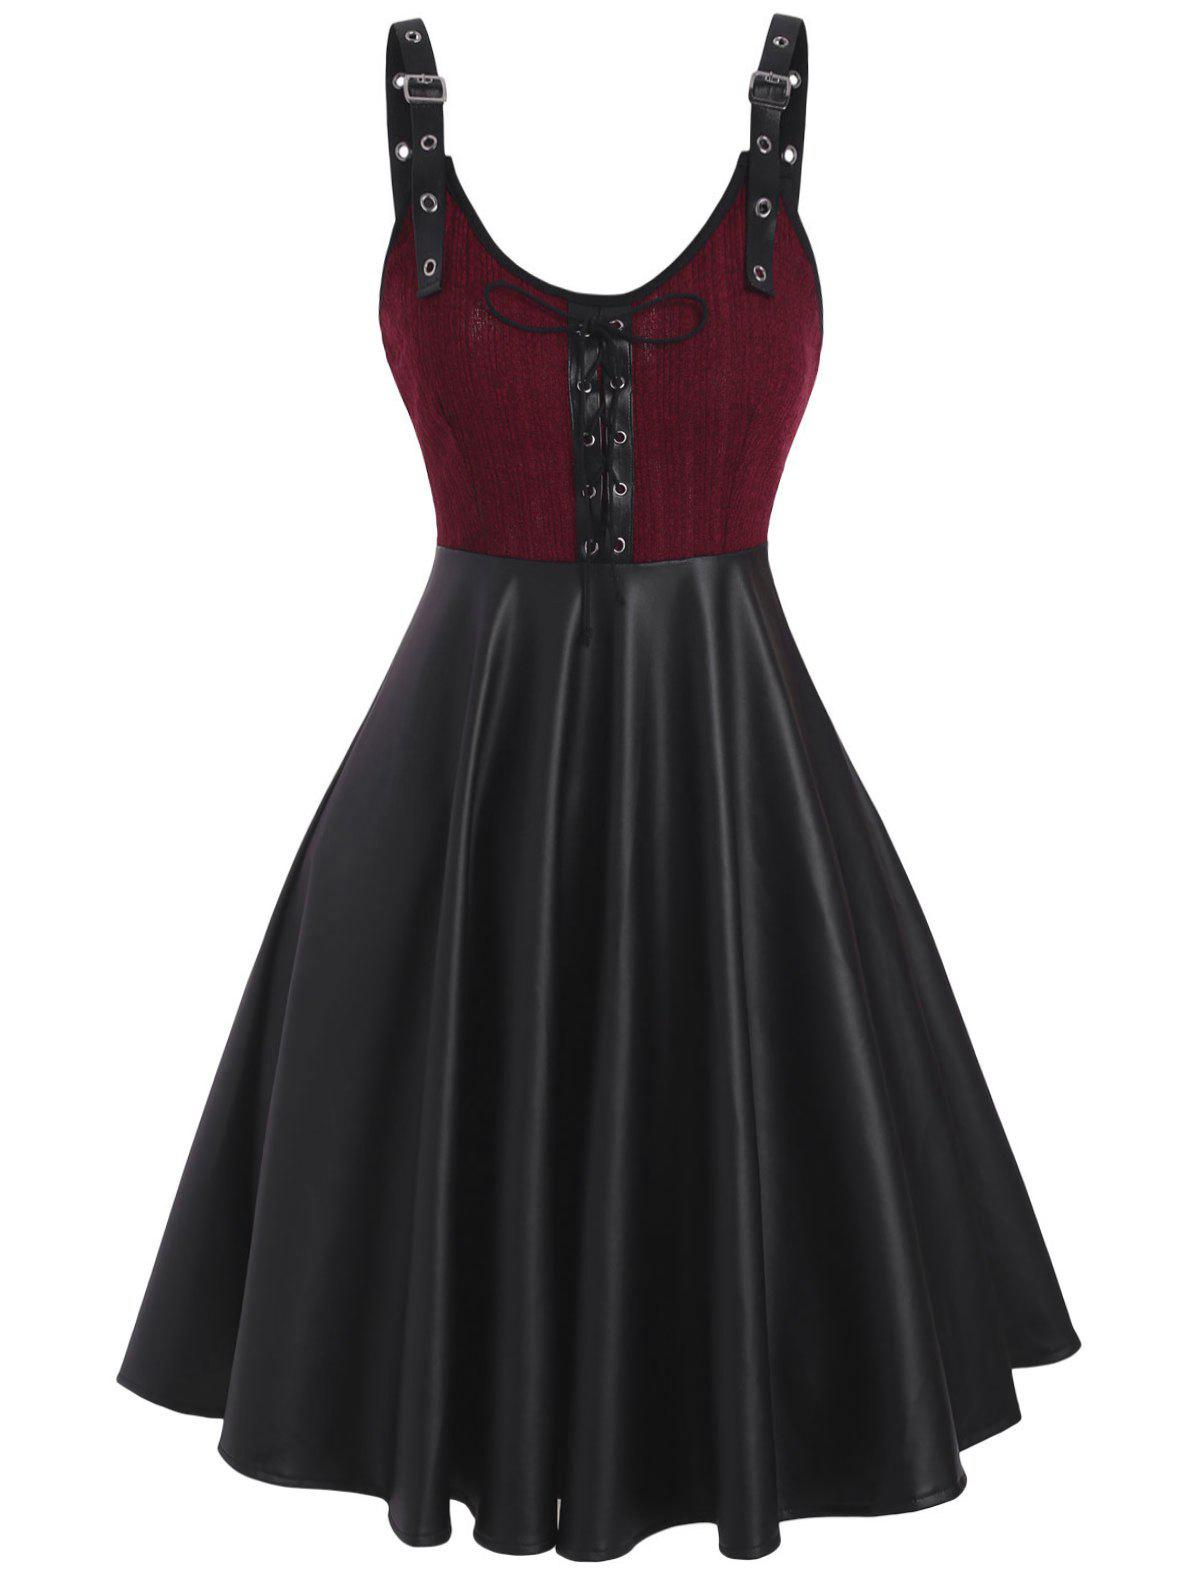 Buckled Lace-up Knit Panel Faux Leather Dress - DEEP RED L